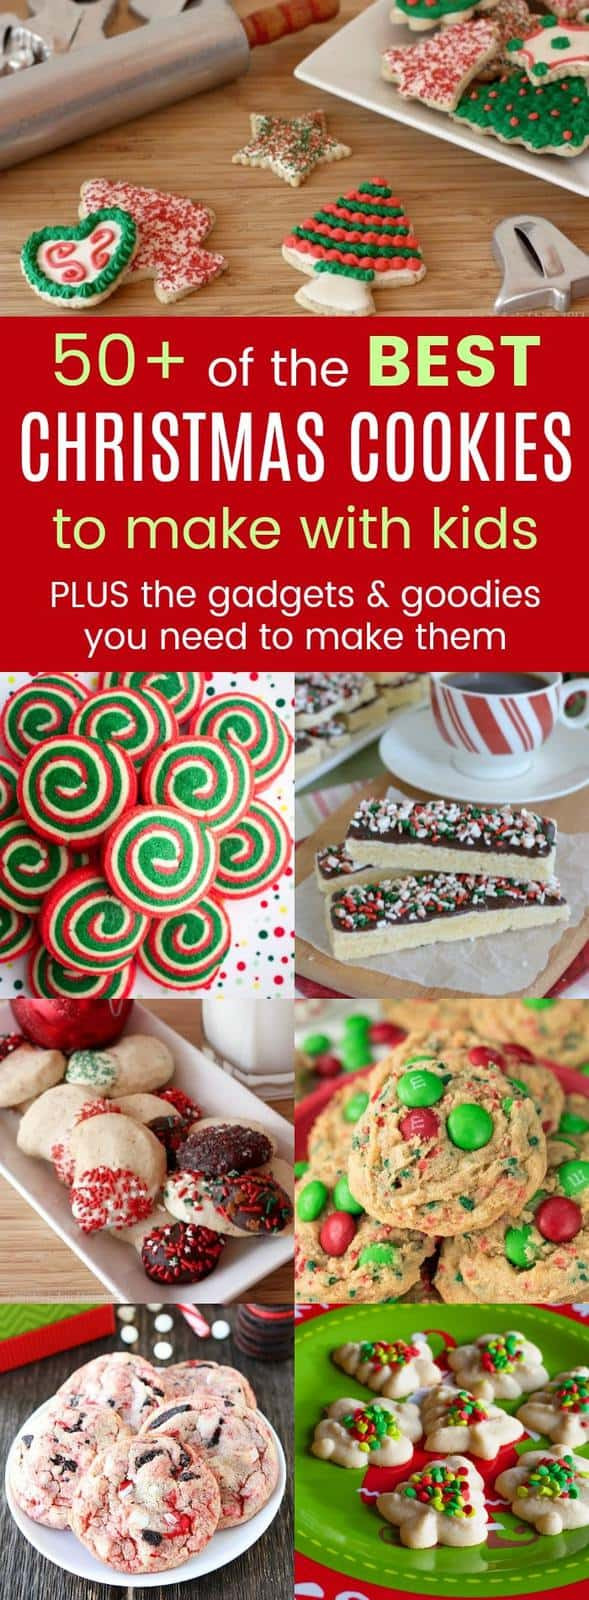 Best Christmas Cookies To Make  The Best Christmas Cookies for Kids Cupcakes & Kale Chips